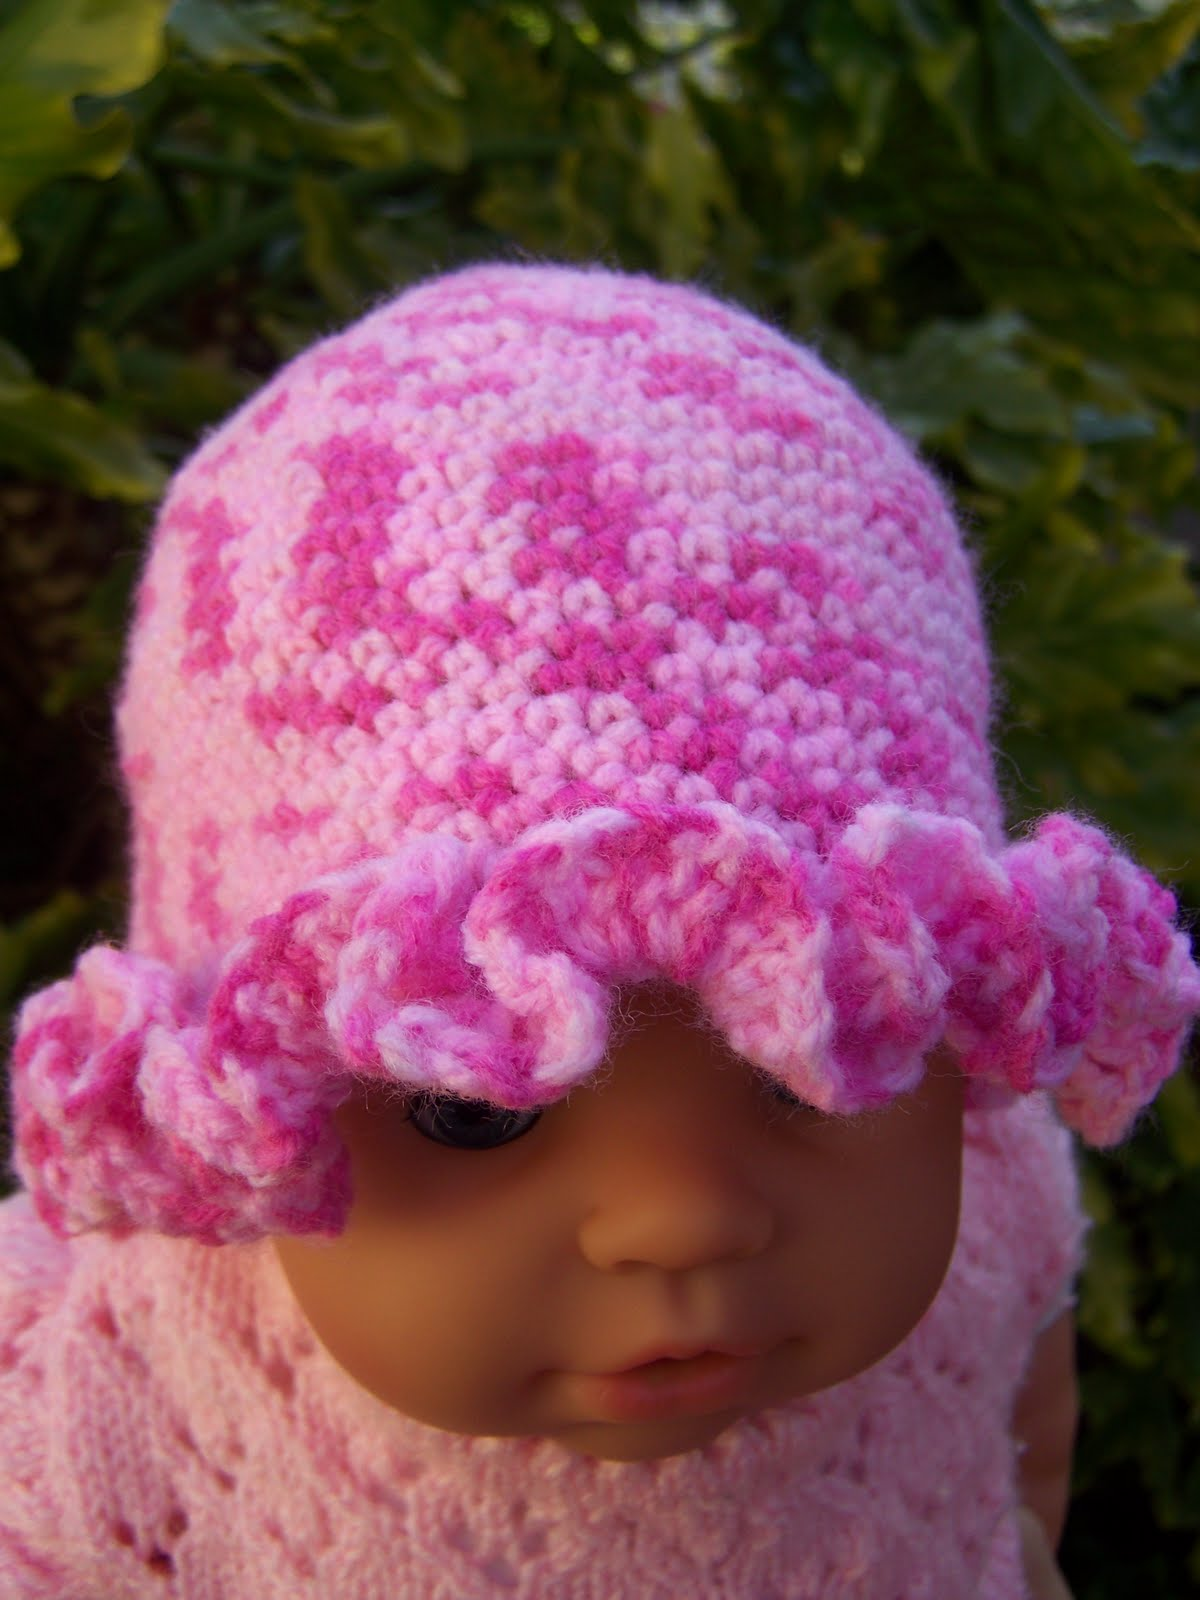 Back in my corner (with crayons): Crocheted Baby Ruffle Hat.